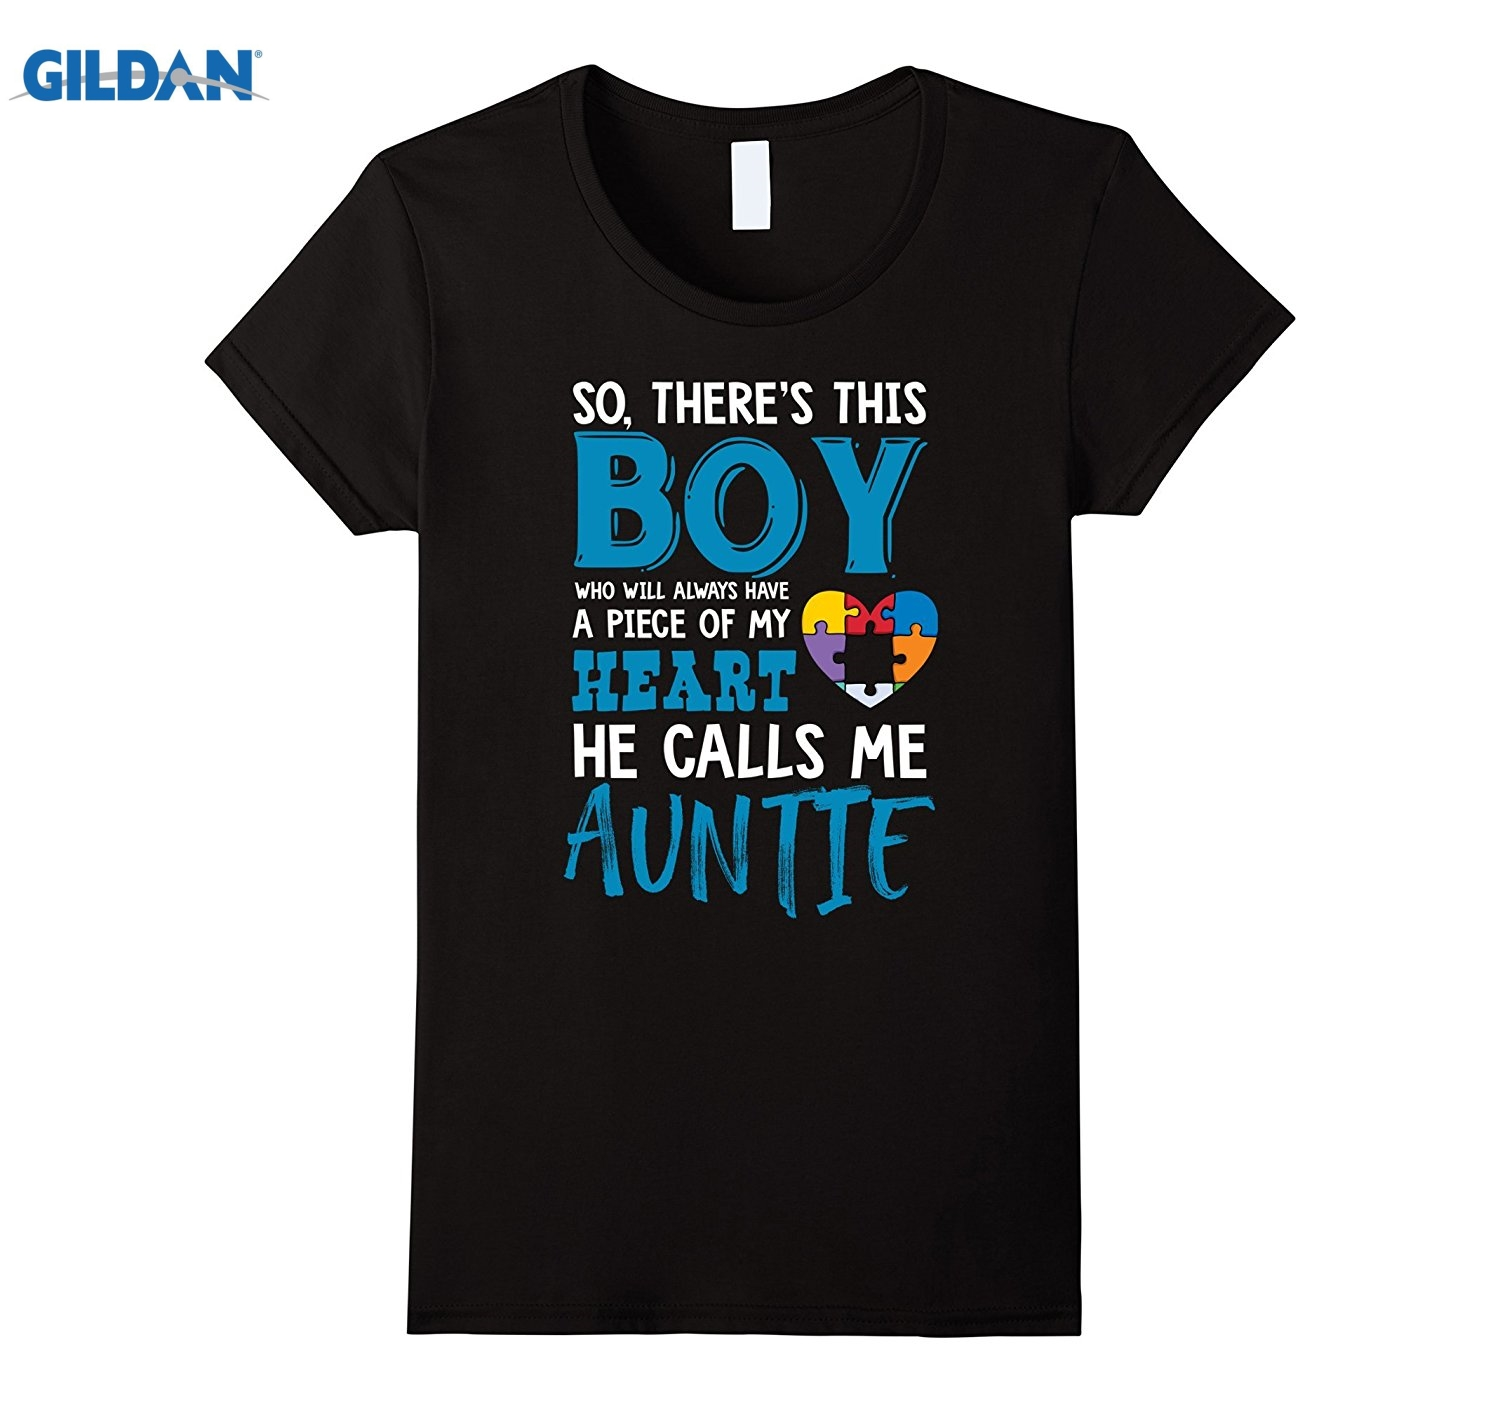 GILDAN Womens Autism Quotes Auntie Tshirt for Autism Awareness Month summer dress T-shirt